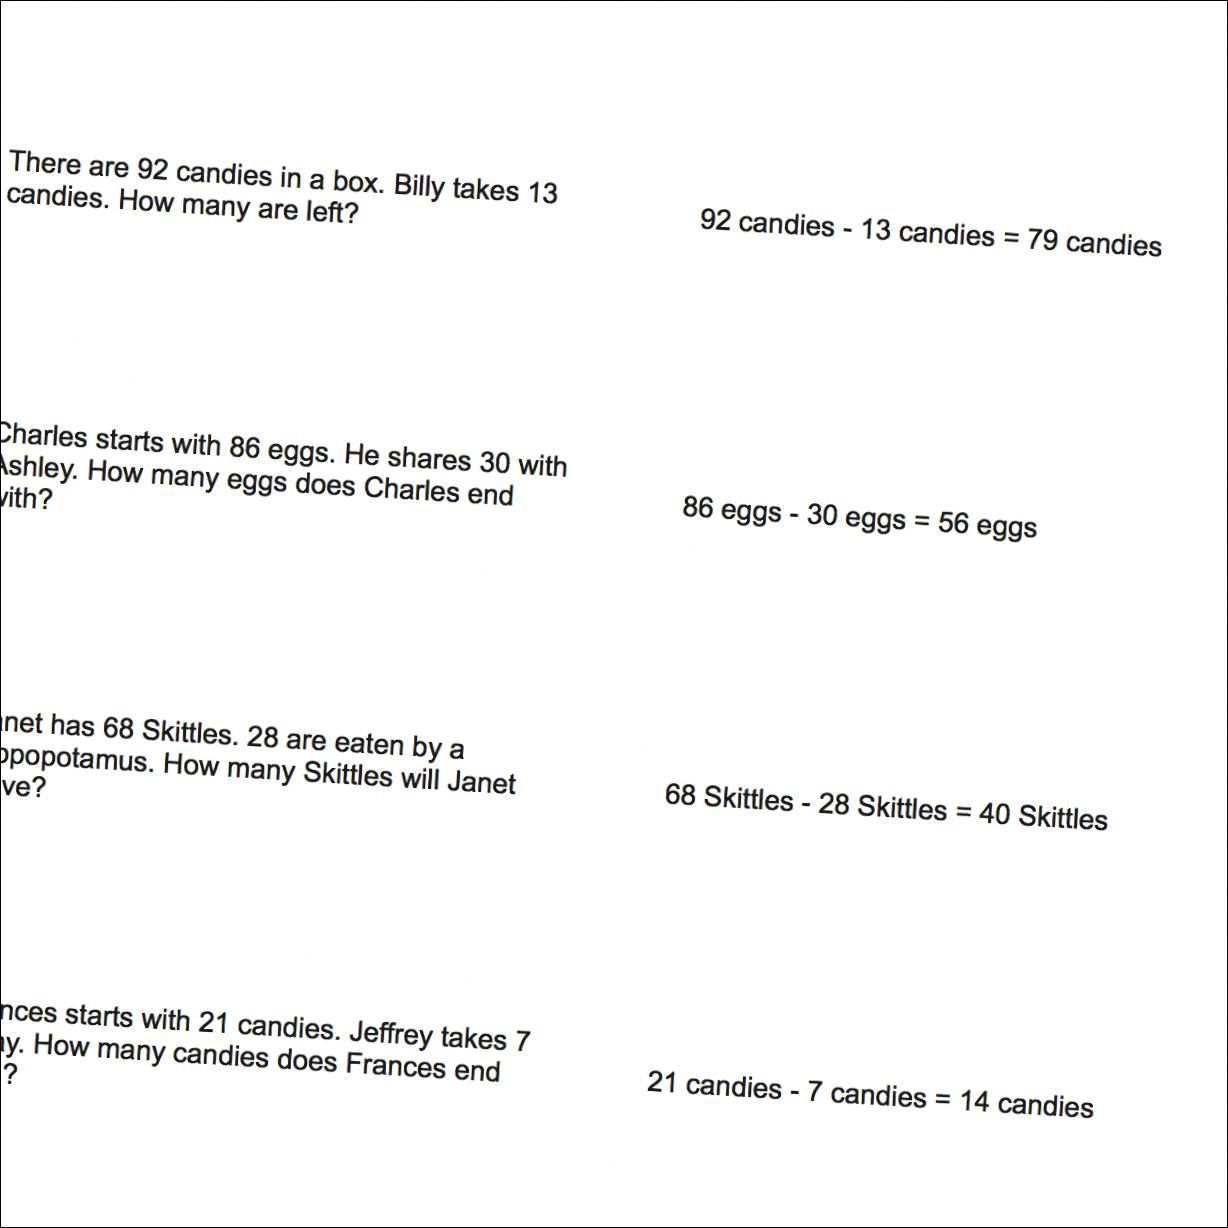 Worksheet Mixed Word Problems word problems mixed addition and subtraction mel problems